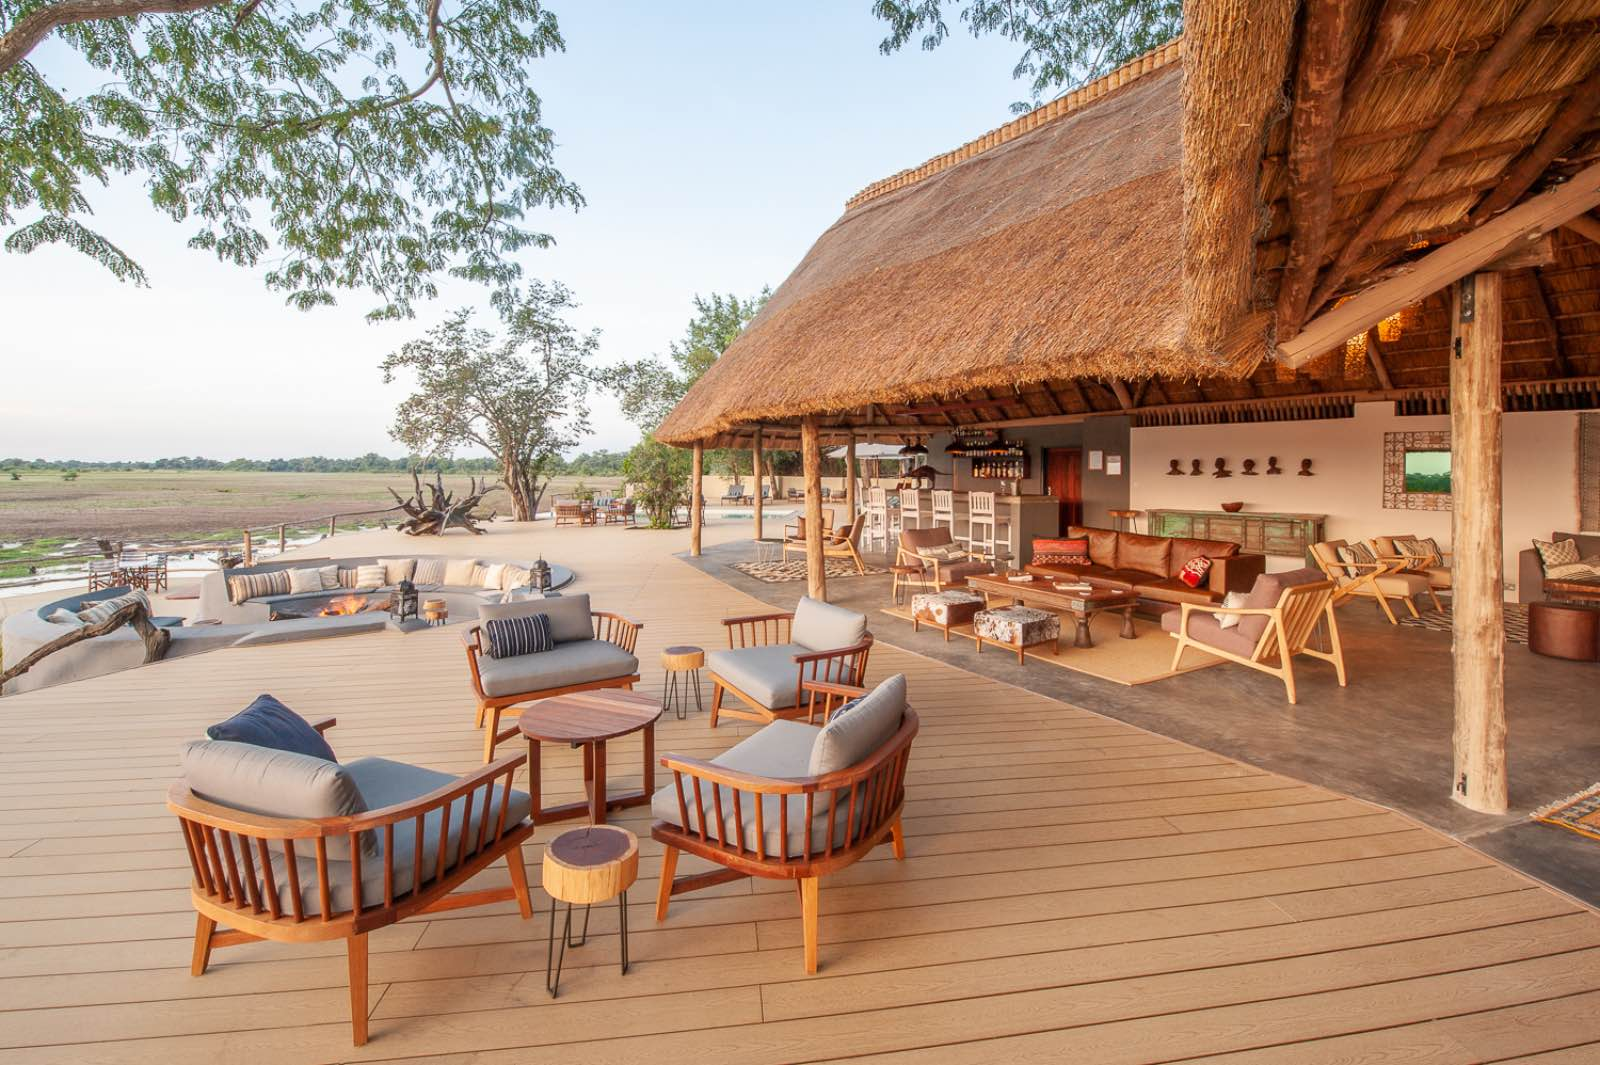 Kafunta River Lodge, Light and luxurious new look for affordable Zambia safari lodge